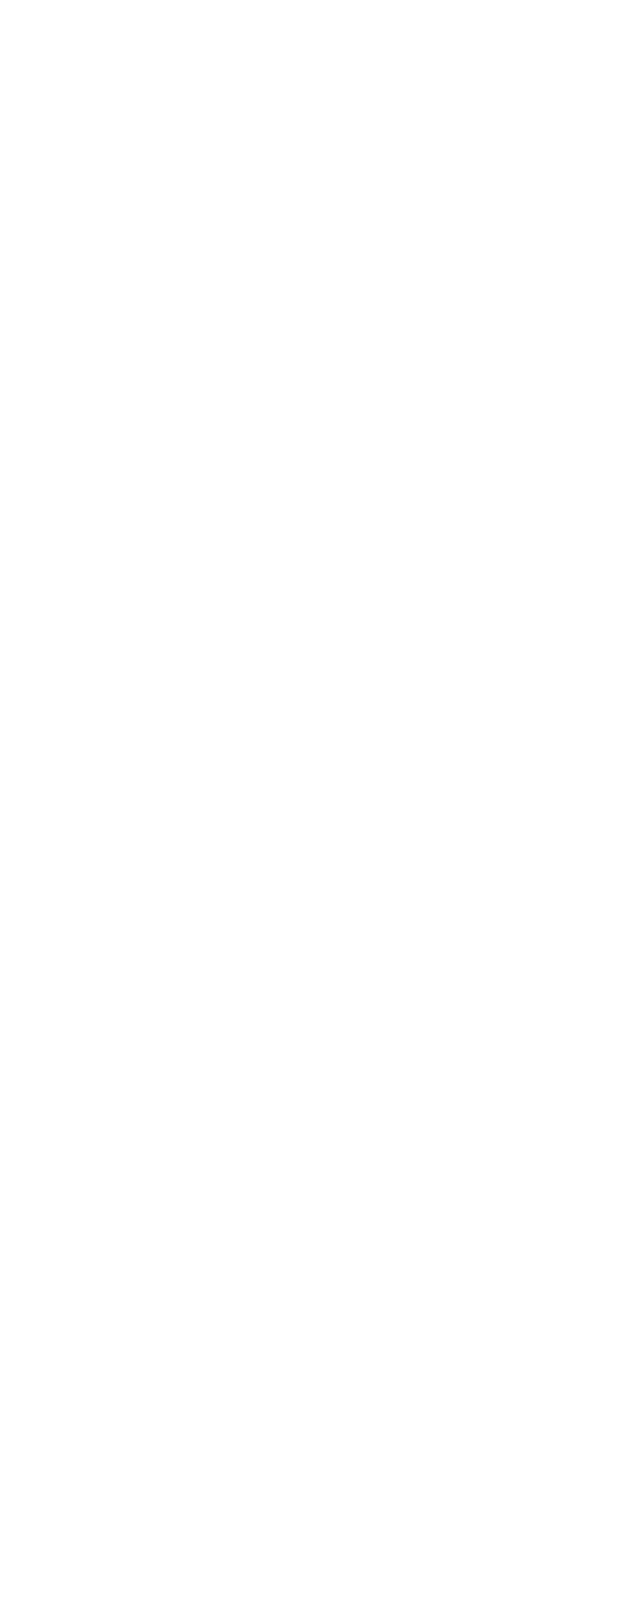 R8Outboard-floor plans